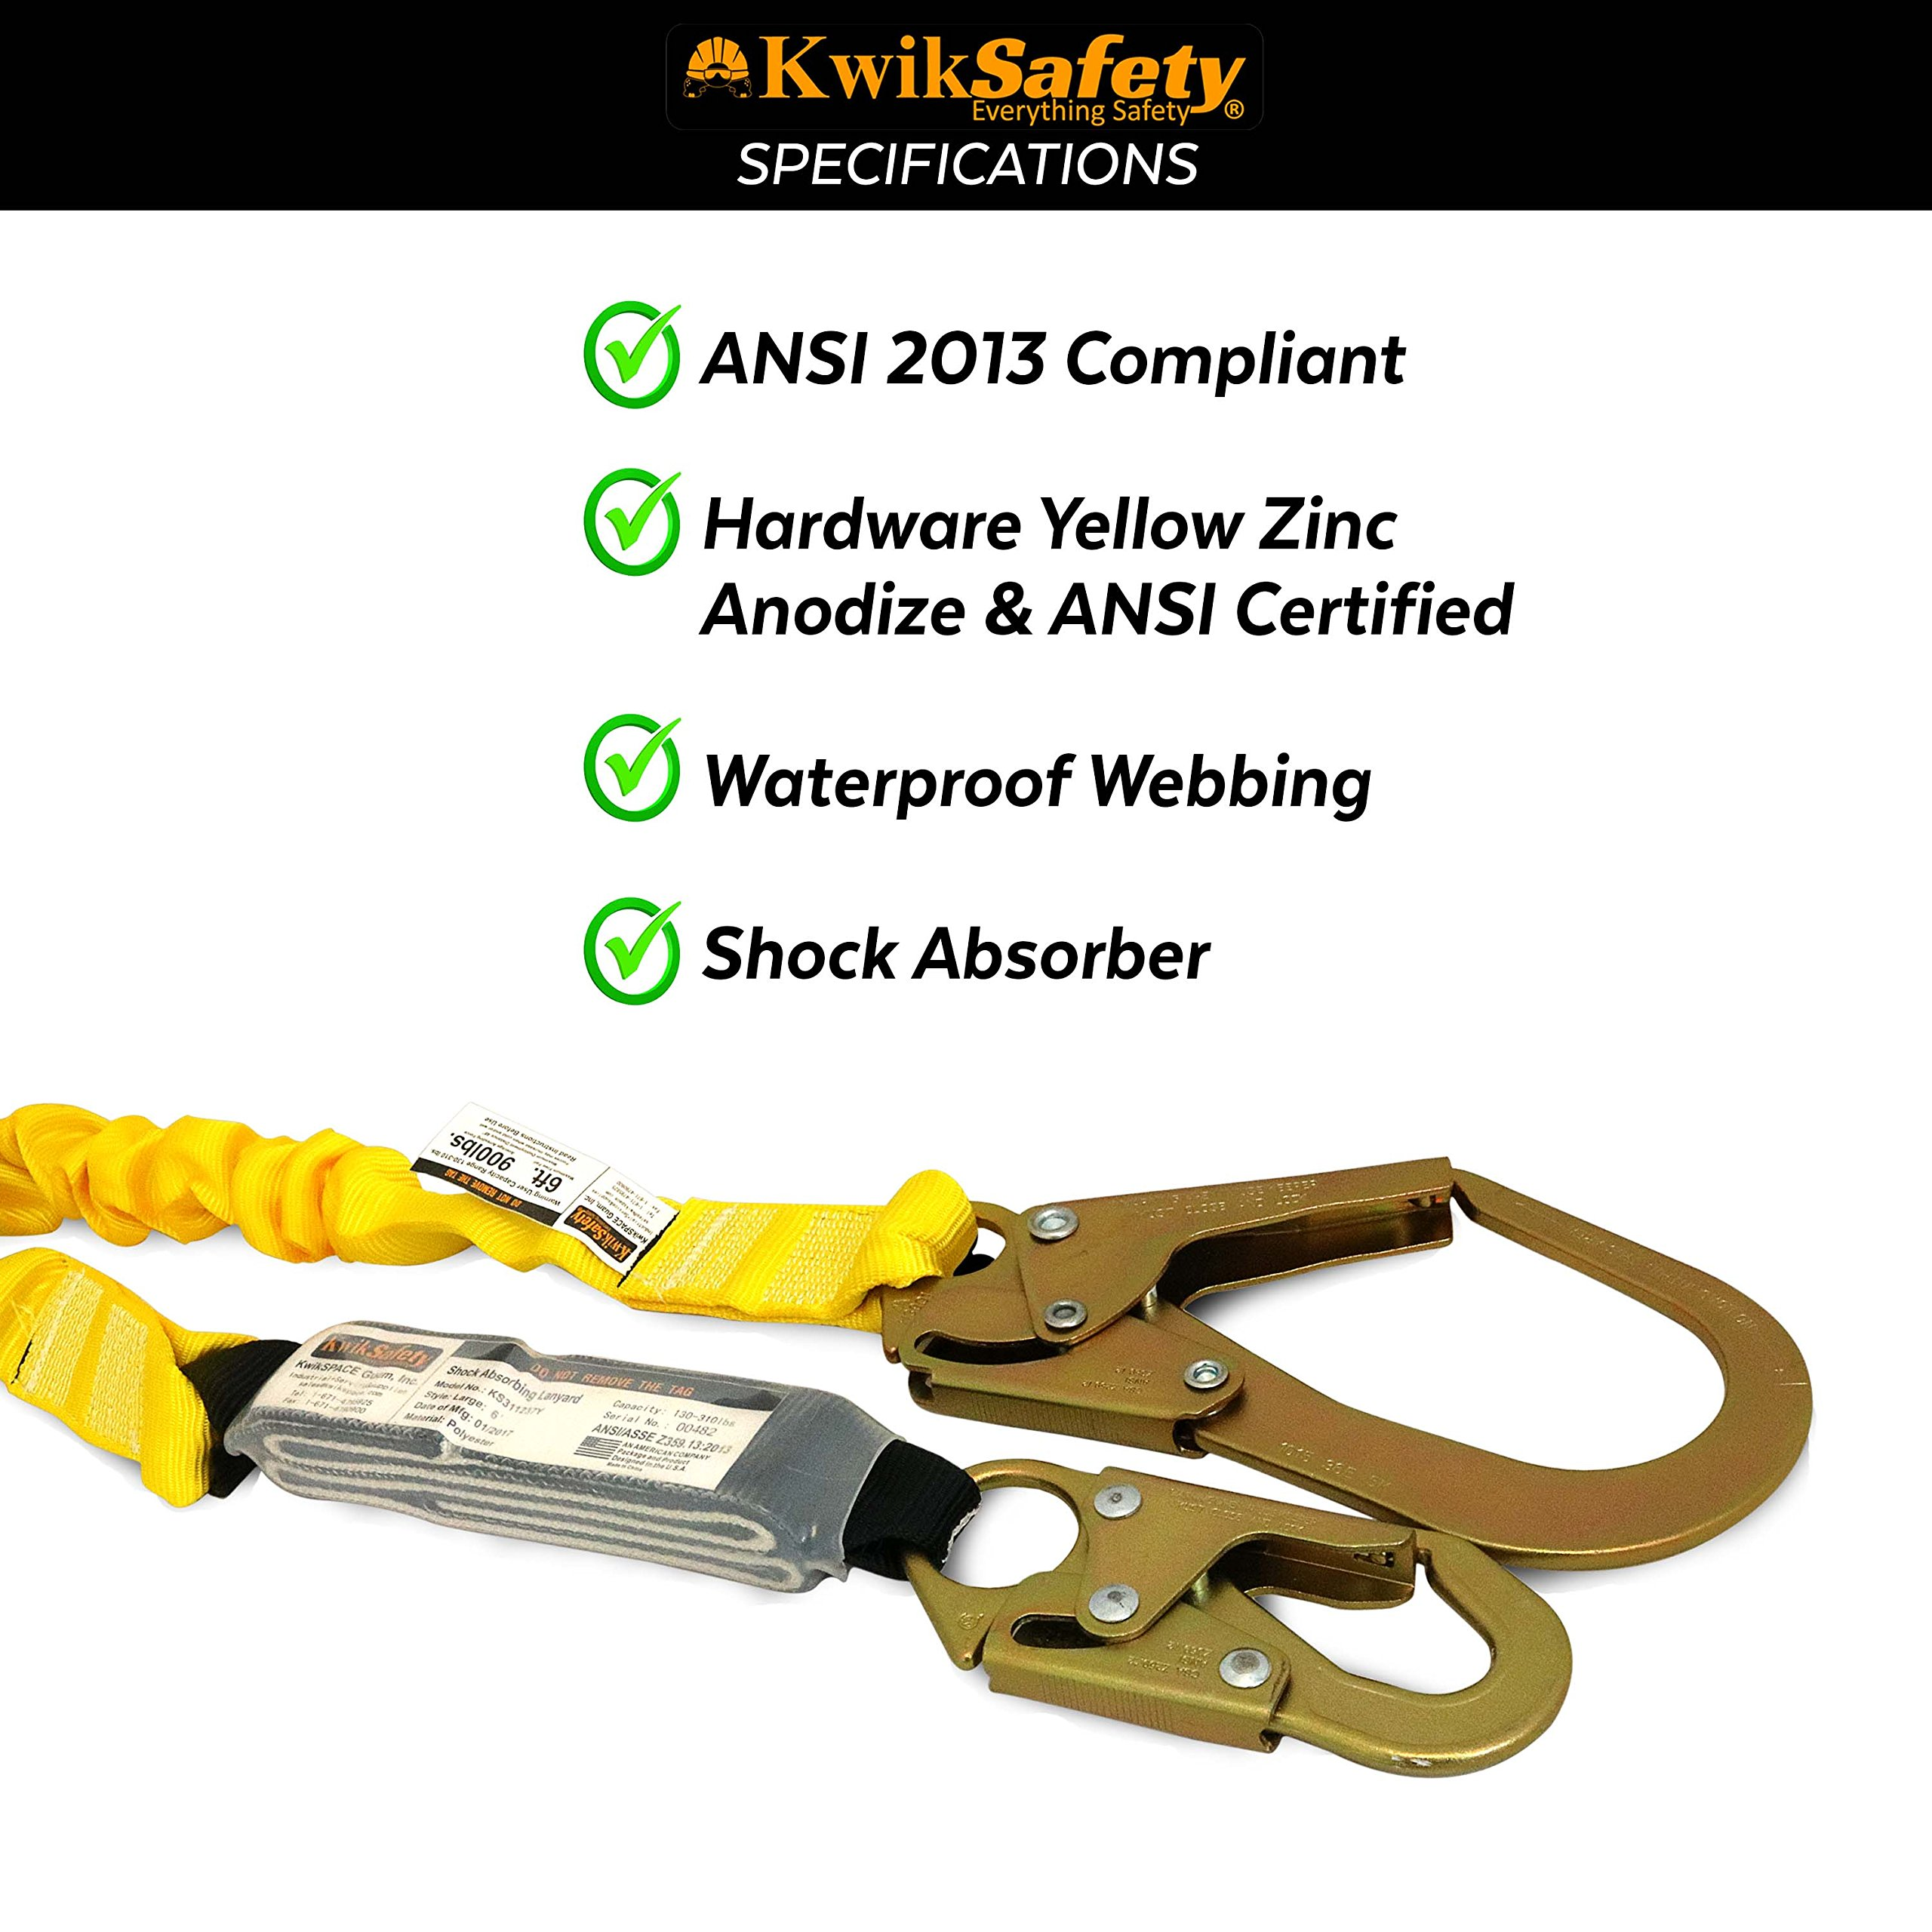 KwikSafety (Charlotte, NC) BOA 4 PACK (External Shock Absorber) Single Leg 6ft Safety Lanyard OSHA ANSI Fall Protection Restraint Equipment Snap Rebar Hook Connectors Construction Arborist Roofing by KwikSafety (Image #5)